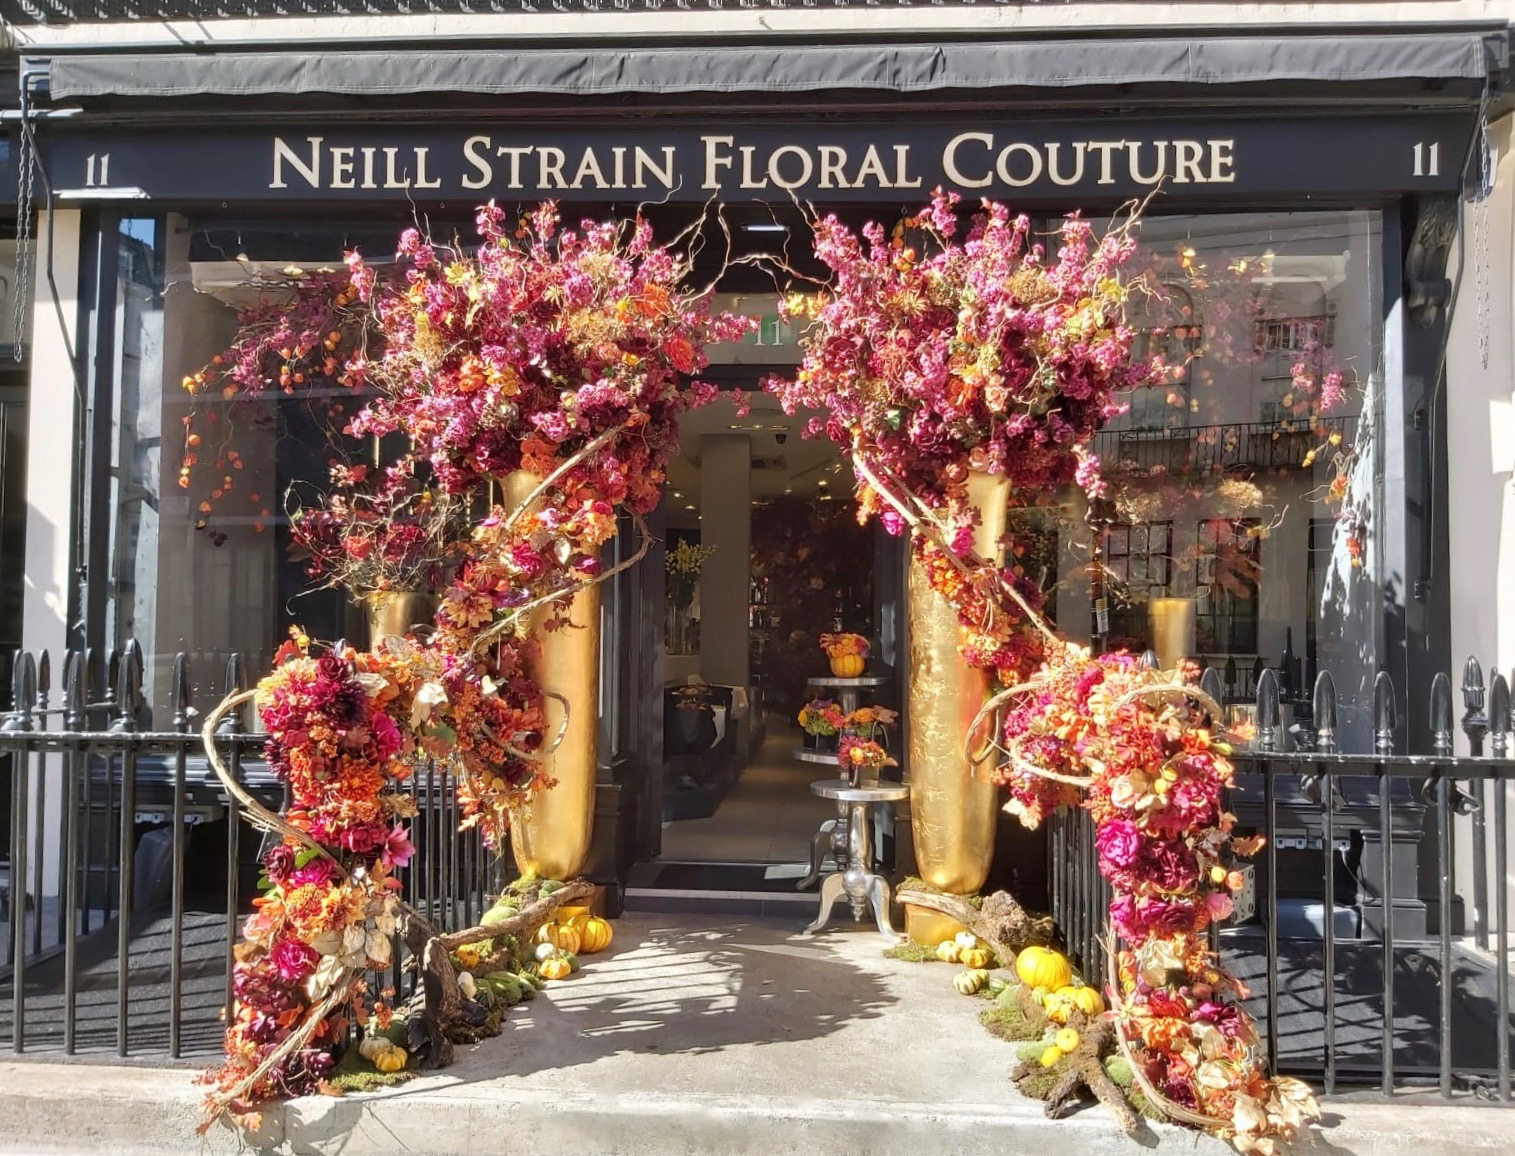 Autumn has arrived at Neill Strain Floral Couture in Belgravia